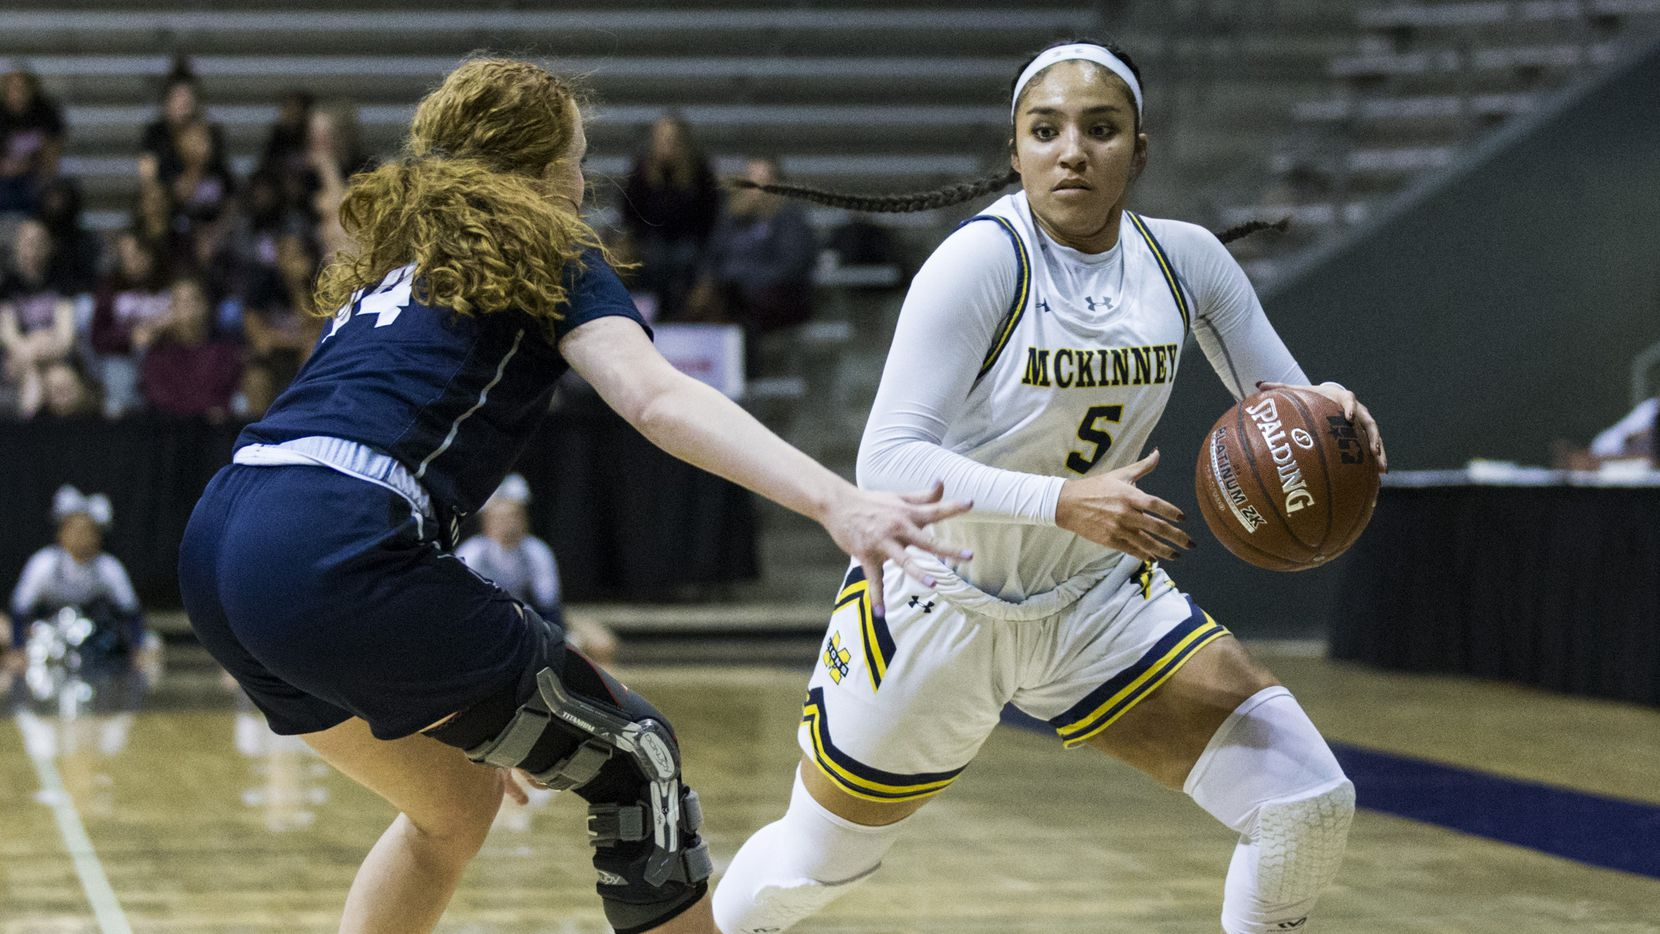 McKinney guard Trinity White (5) gets around Pflugerville Hendrickson's Sarah Malinowski during a Class 6A Region II semifinal on Feb. 28, 2020 at Ellis Davis Field House in Dallas.